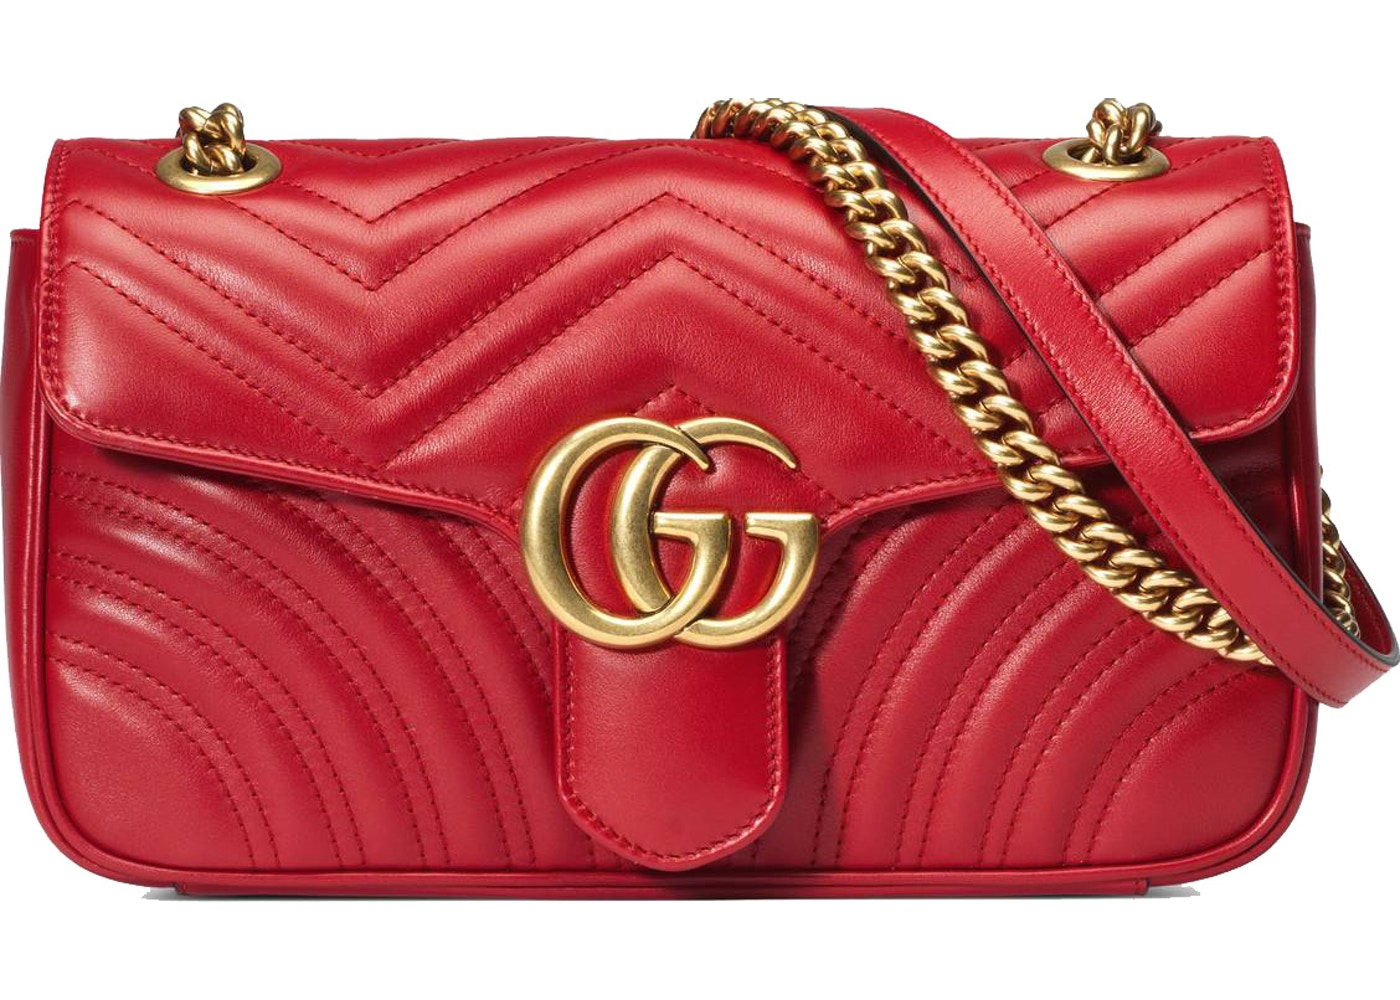 4b2fa713a89 Gucci Marmont Shoulder Bag Matelasse Small Hibiscus Red. Matelasse Small  Hibiscus Red